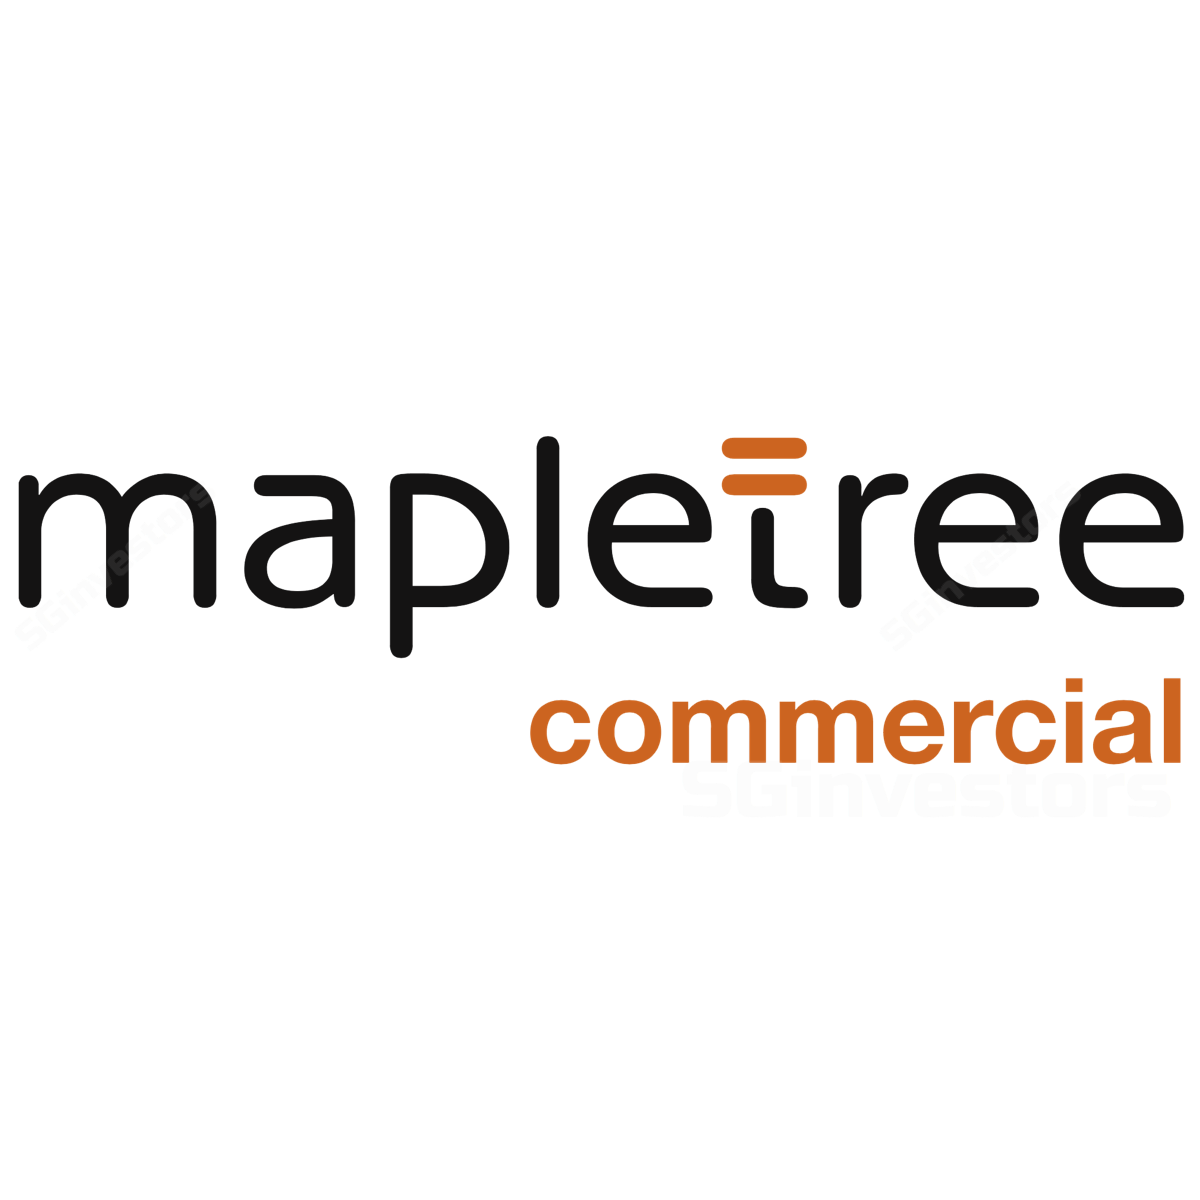 Mapletree Commercial Trust - DBS Vickers 2017-04-26: MBC I – Promises Delivered